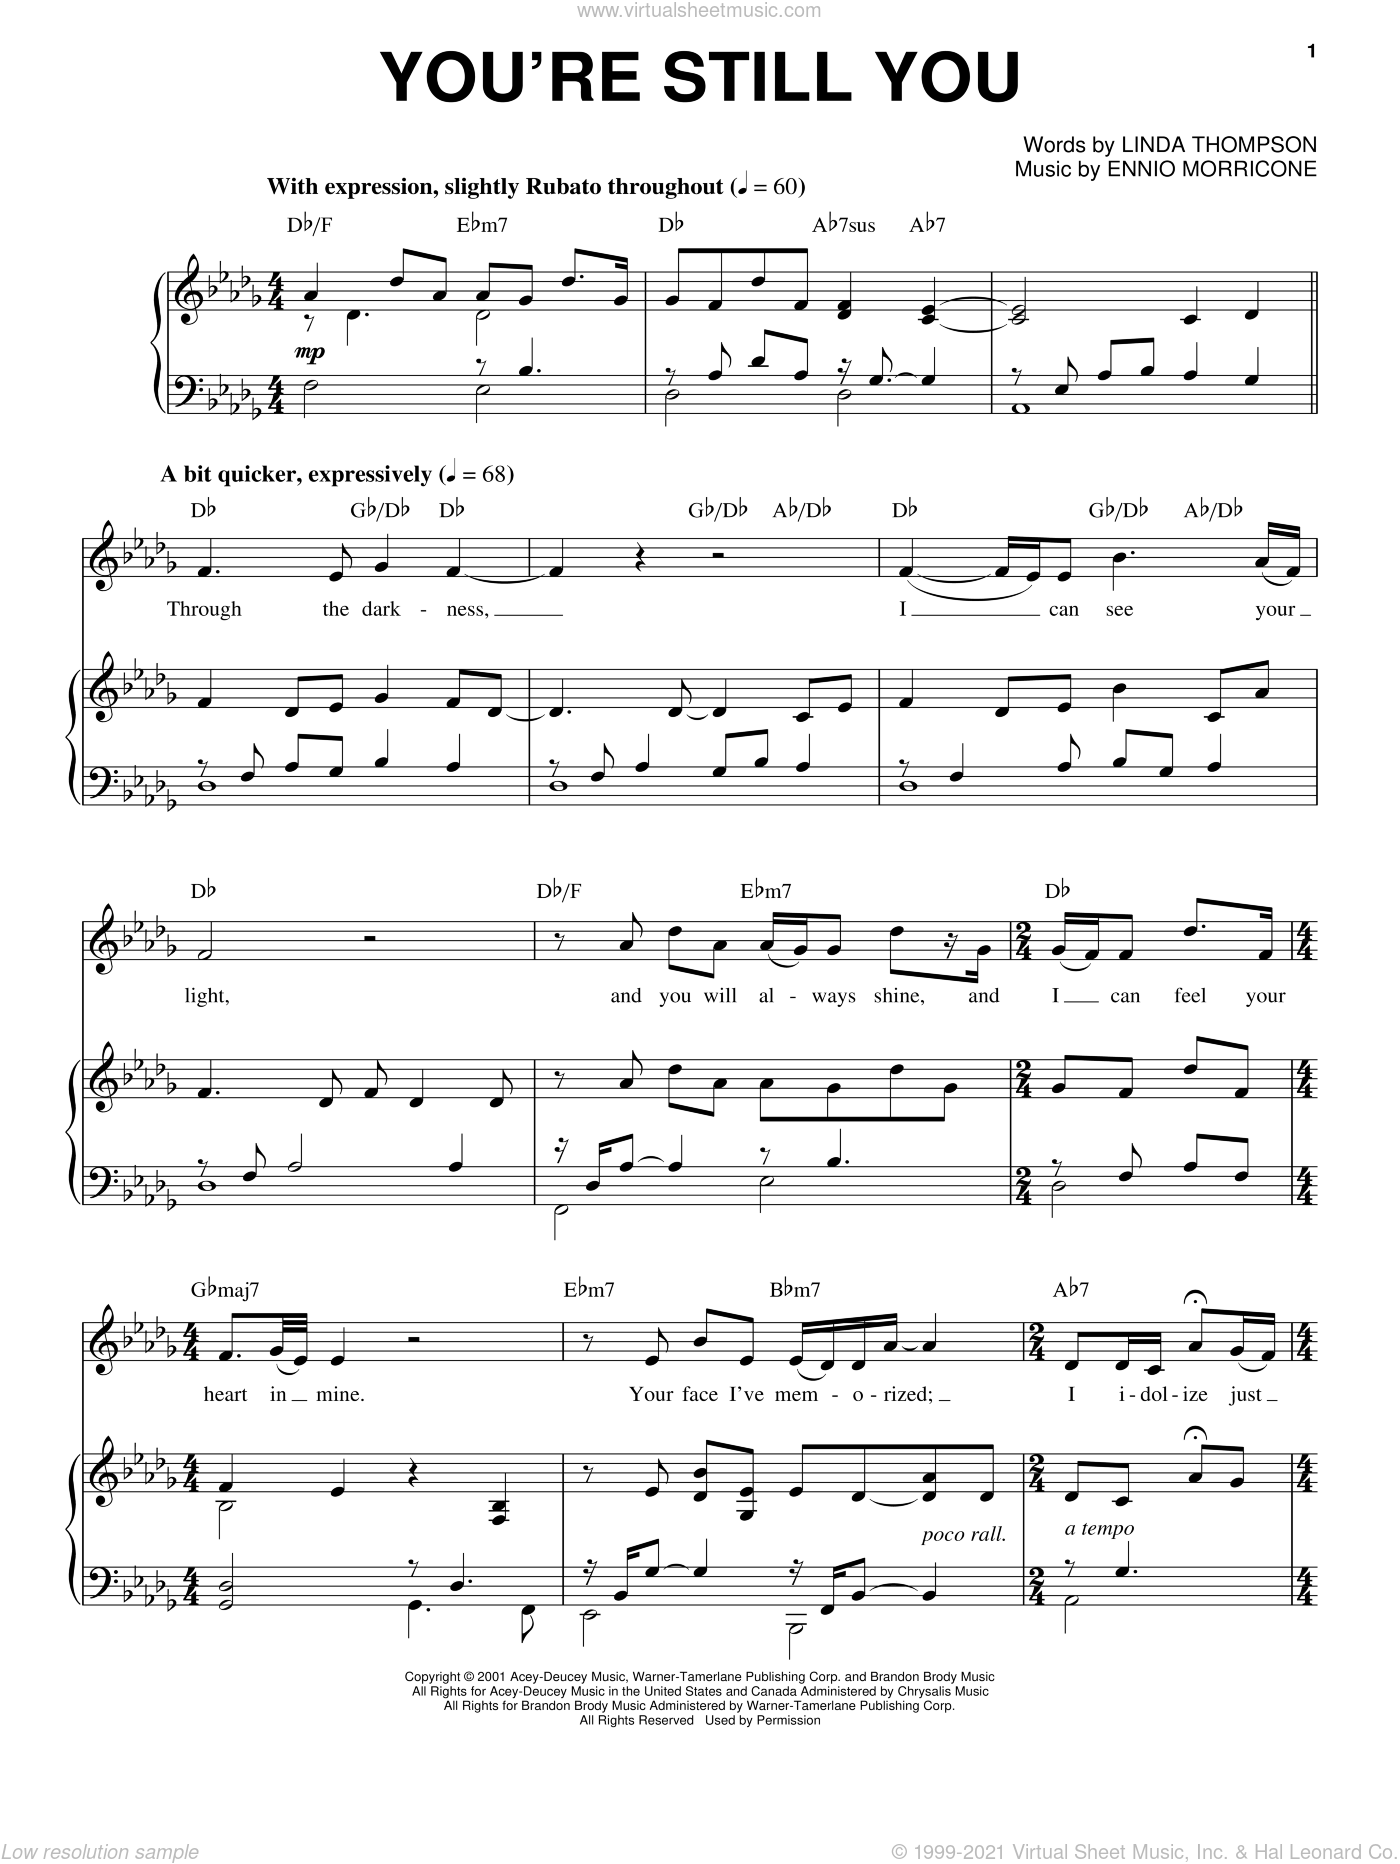 You're Still You sheet music for voice and piano by Linda Thompson